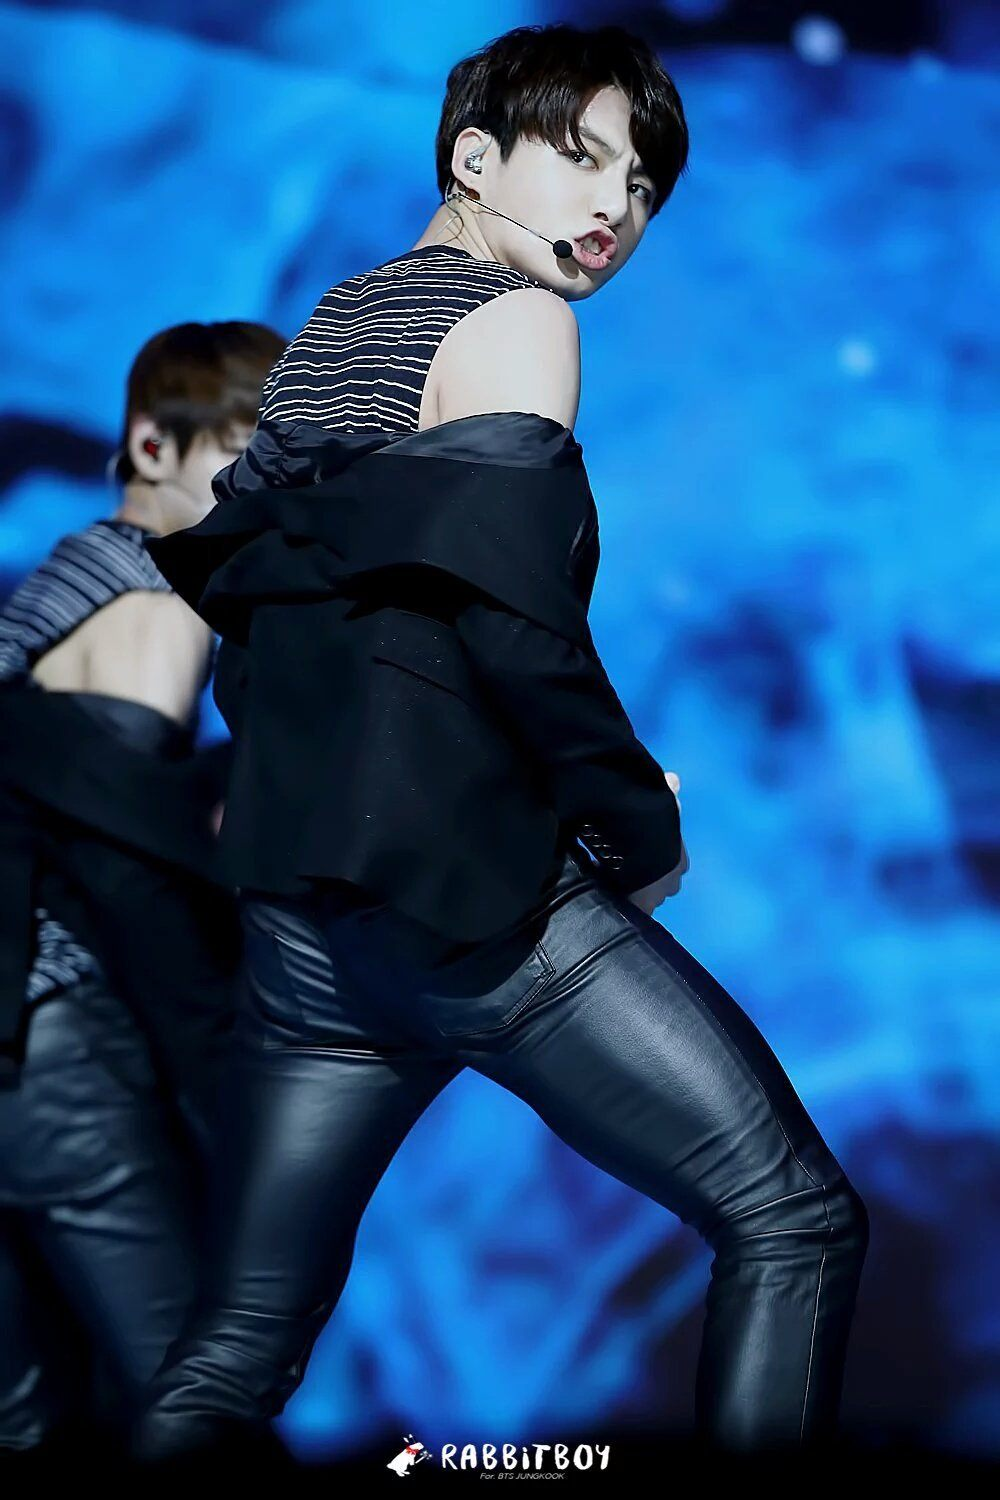 His thighs are no joke.